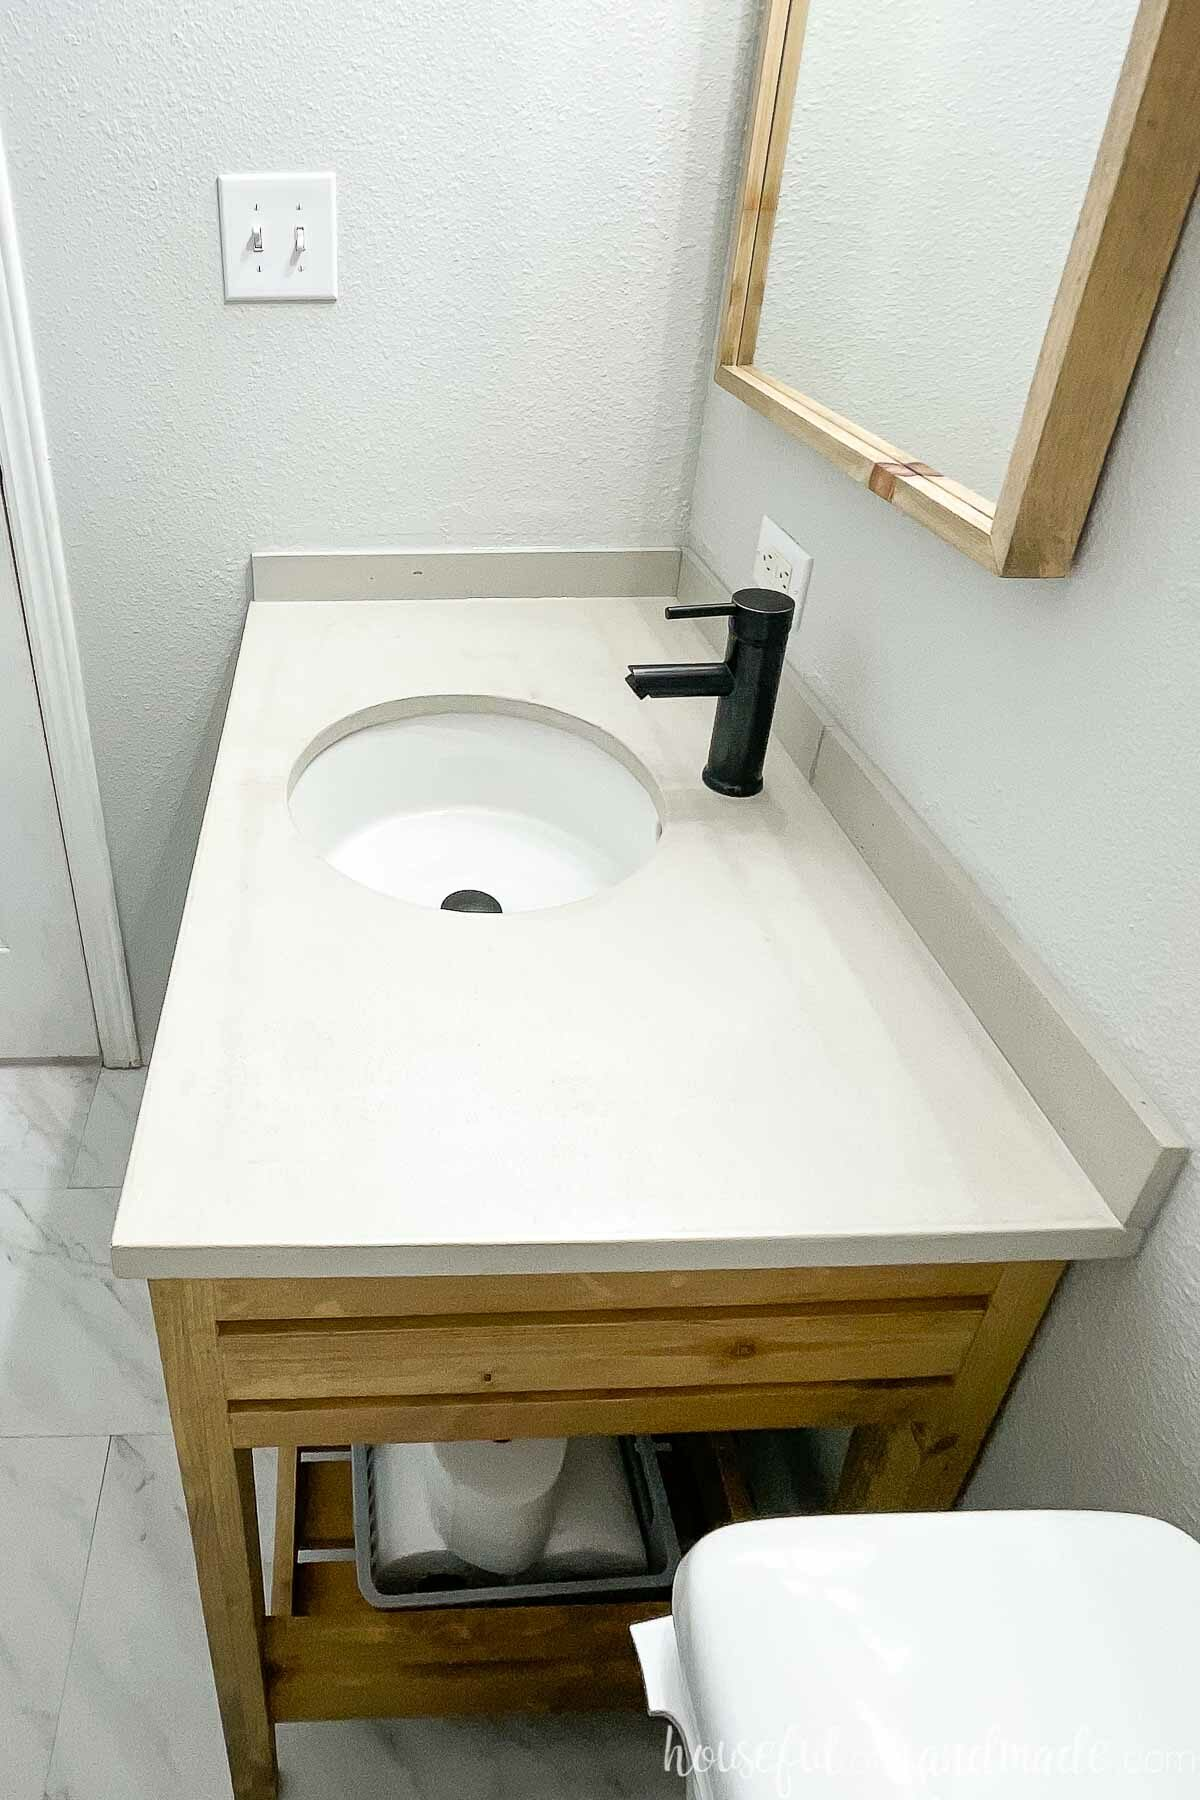 Side view of the concrete vanity top with a white undermount sink and black faucet.